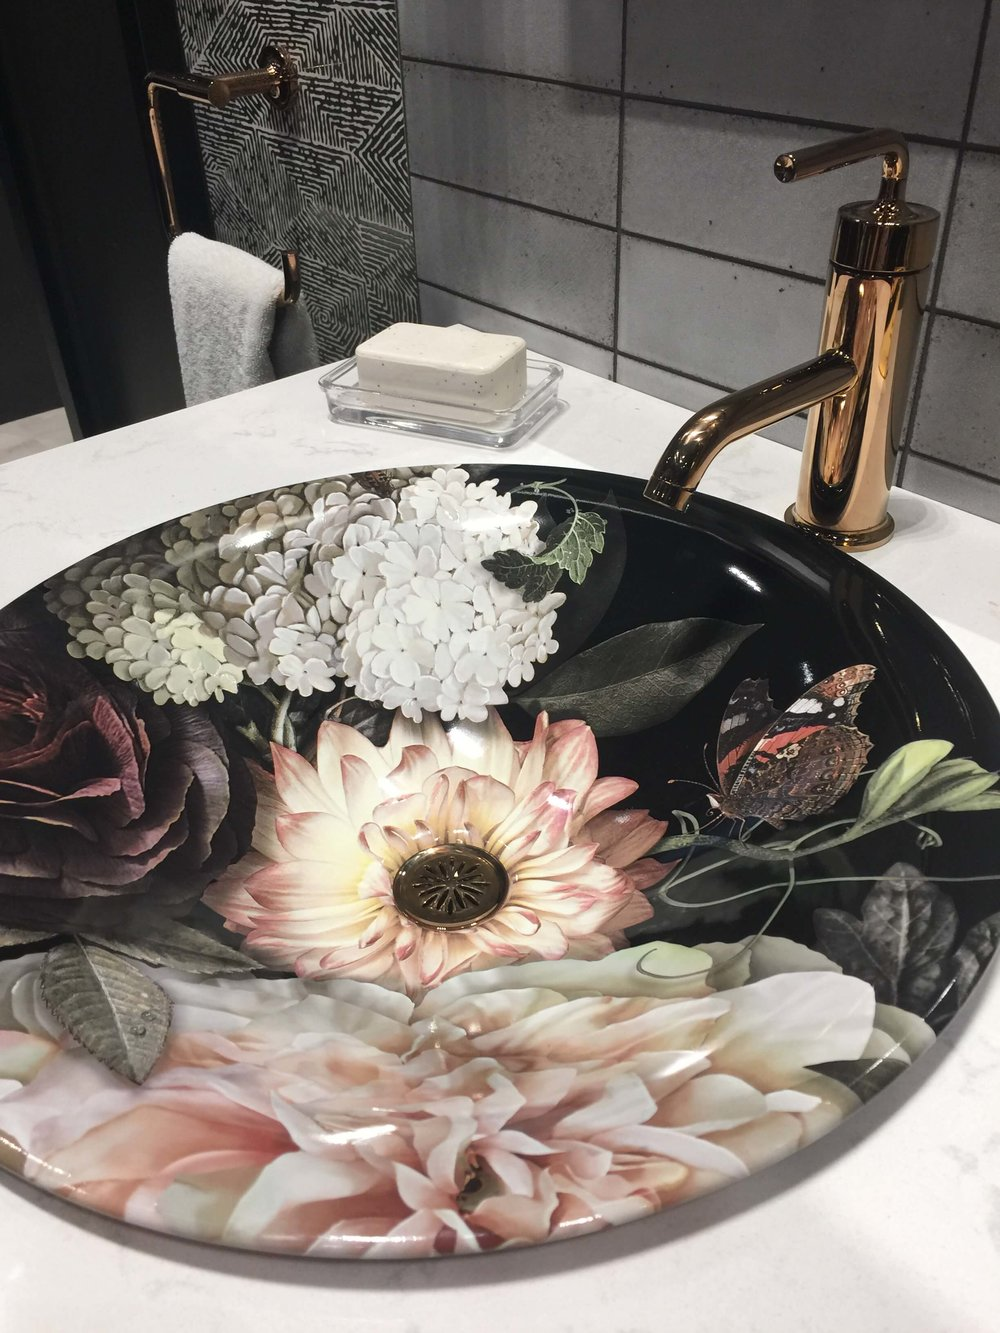 New floral sink design from Kohler #sink #kohlersink